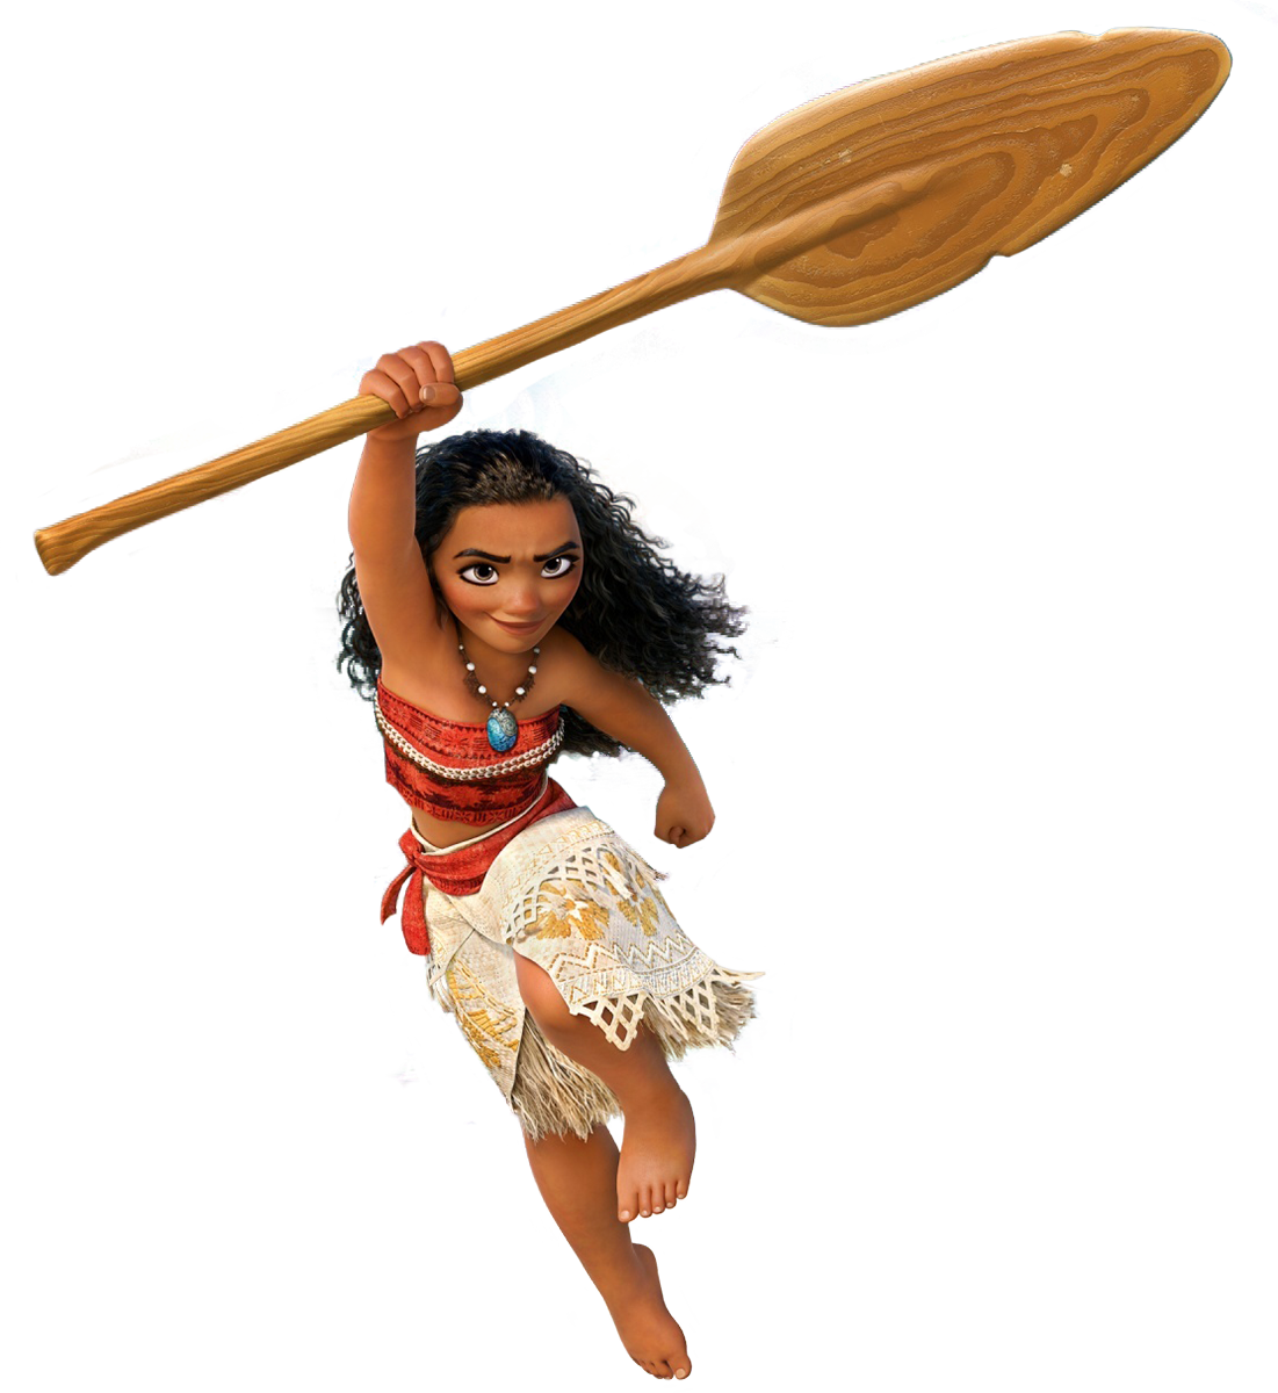 Moana personajes png. Hei the rooster walt